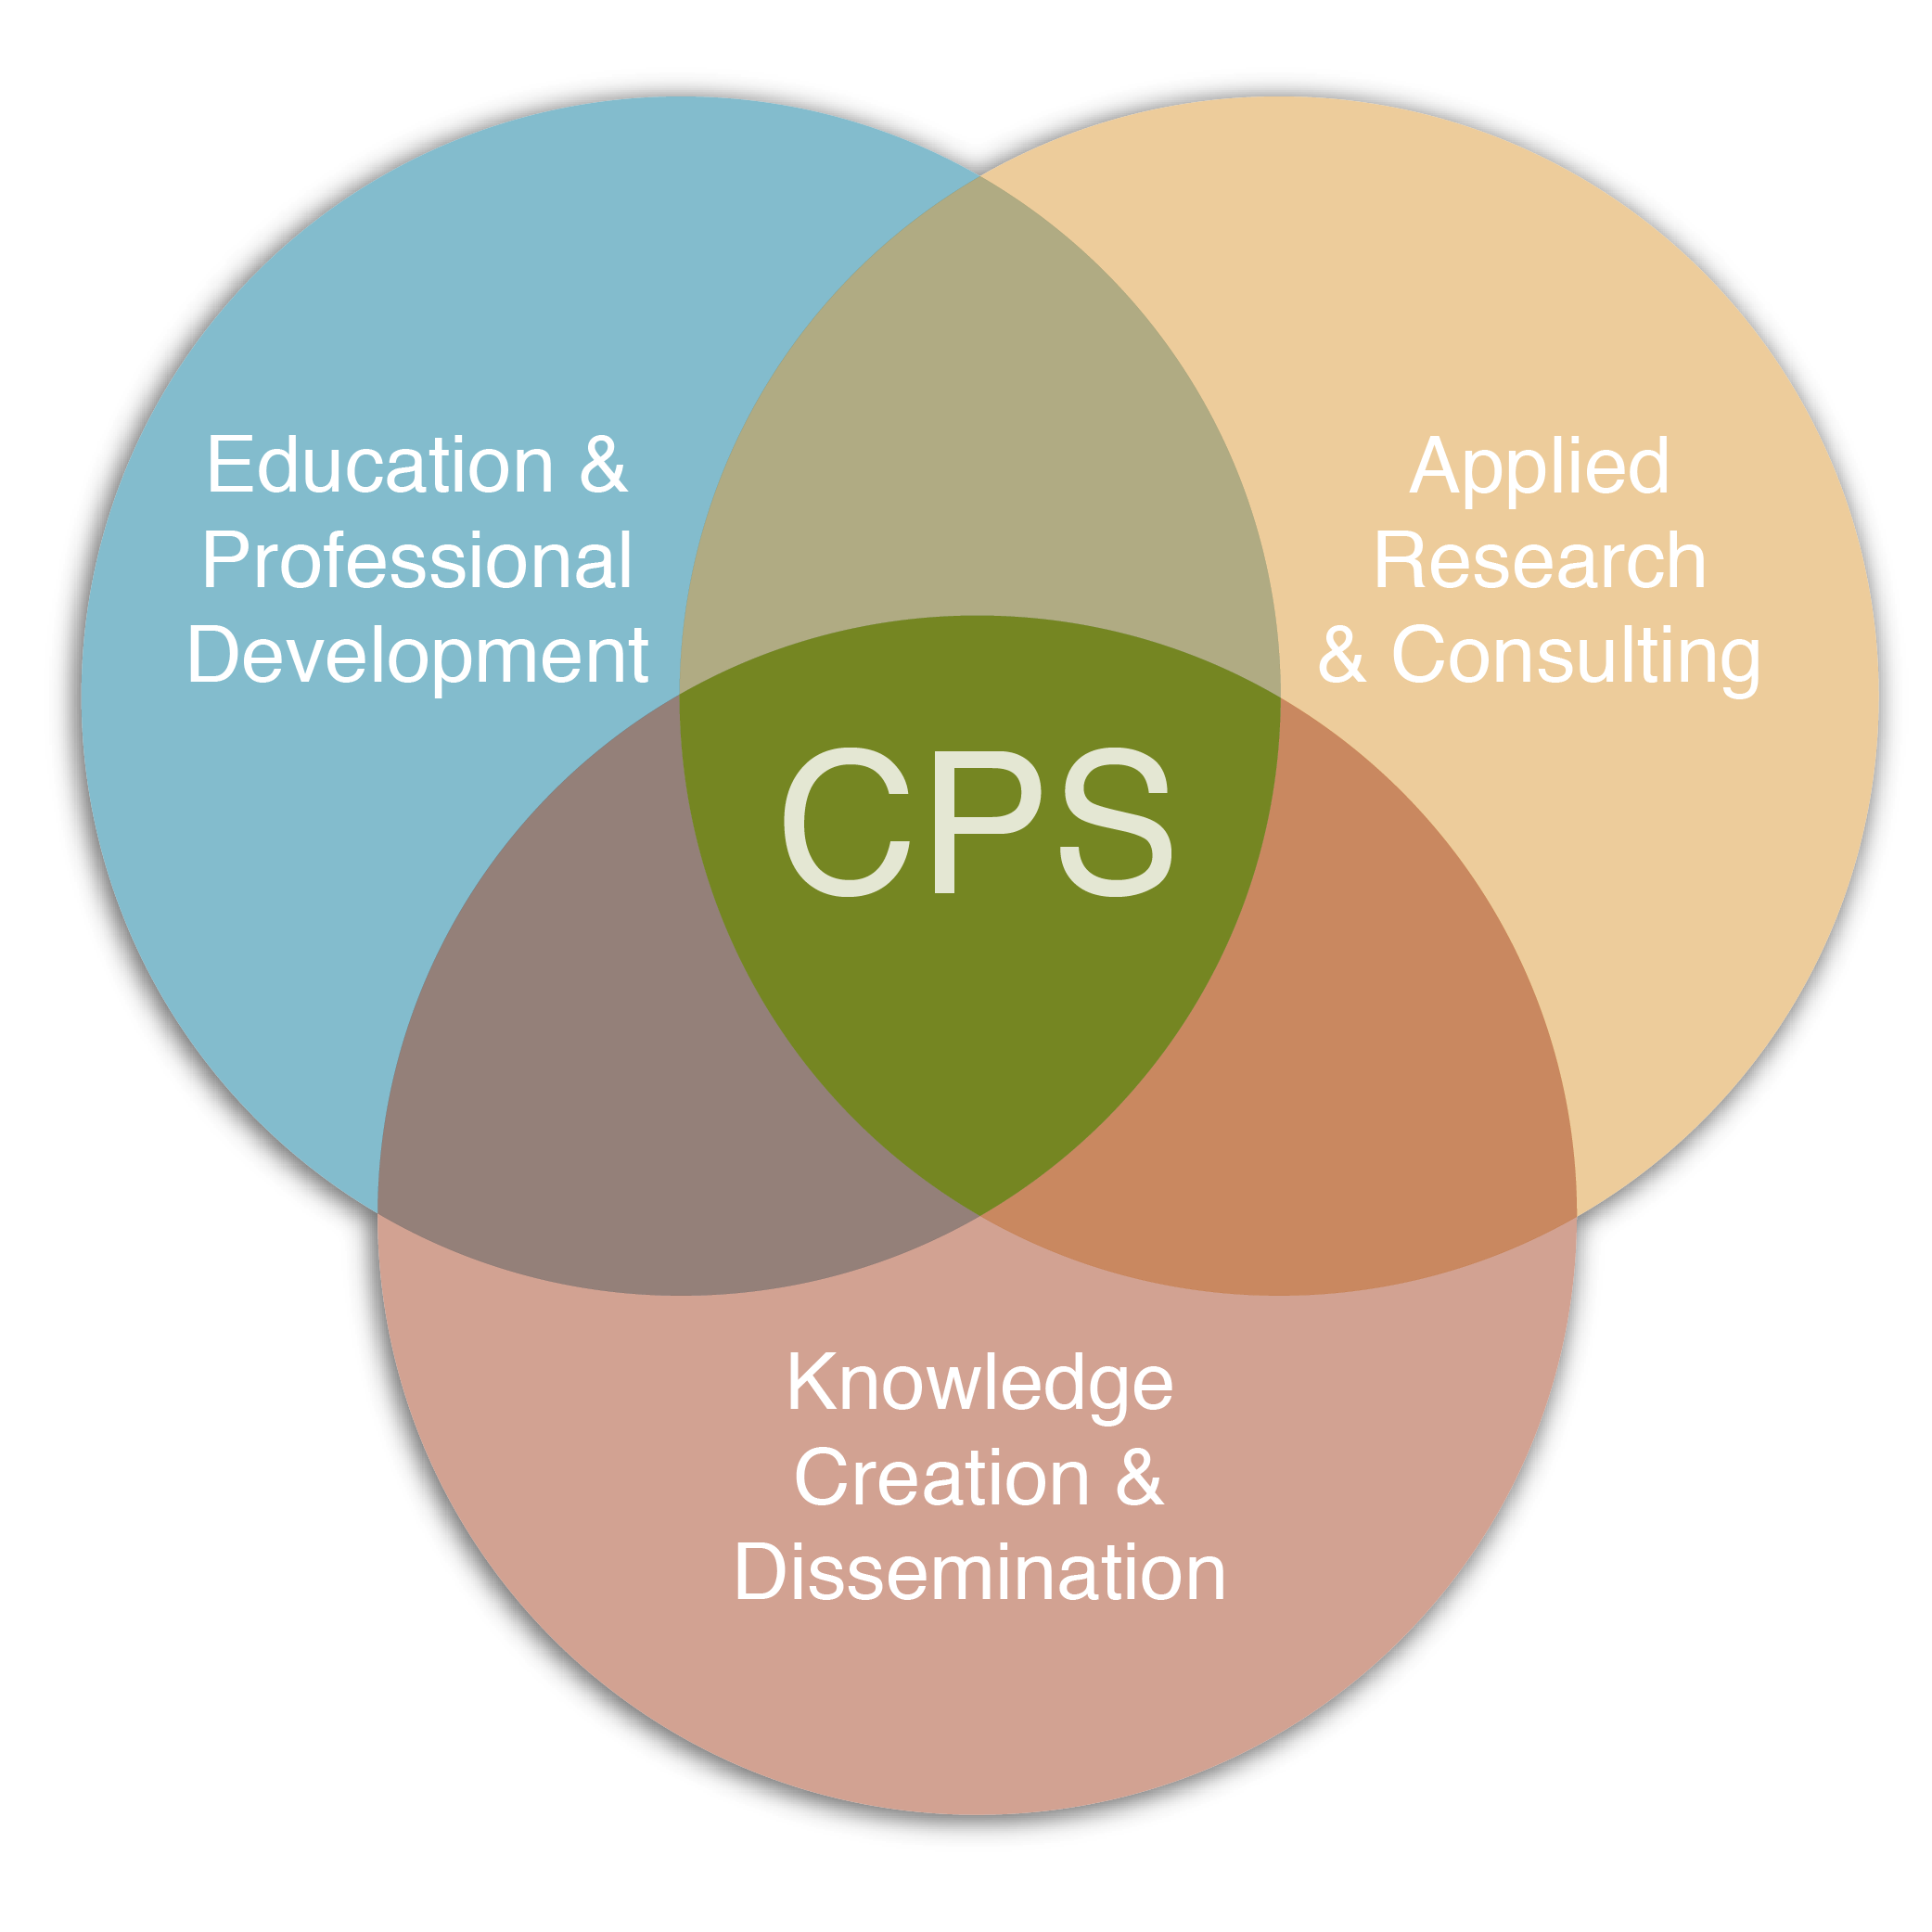 center for public service is the center for education and professional development, applied research and consulting, and knowledge creation and dissemination